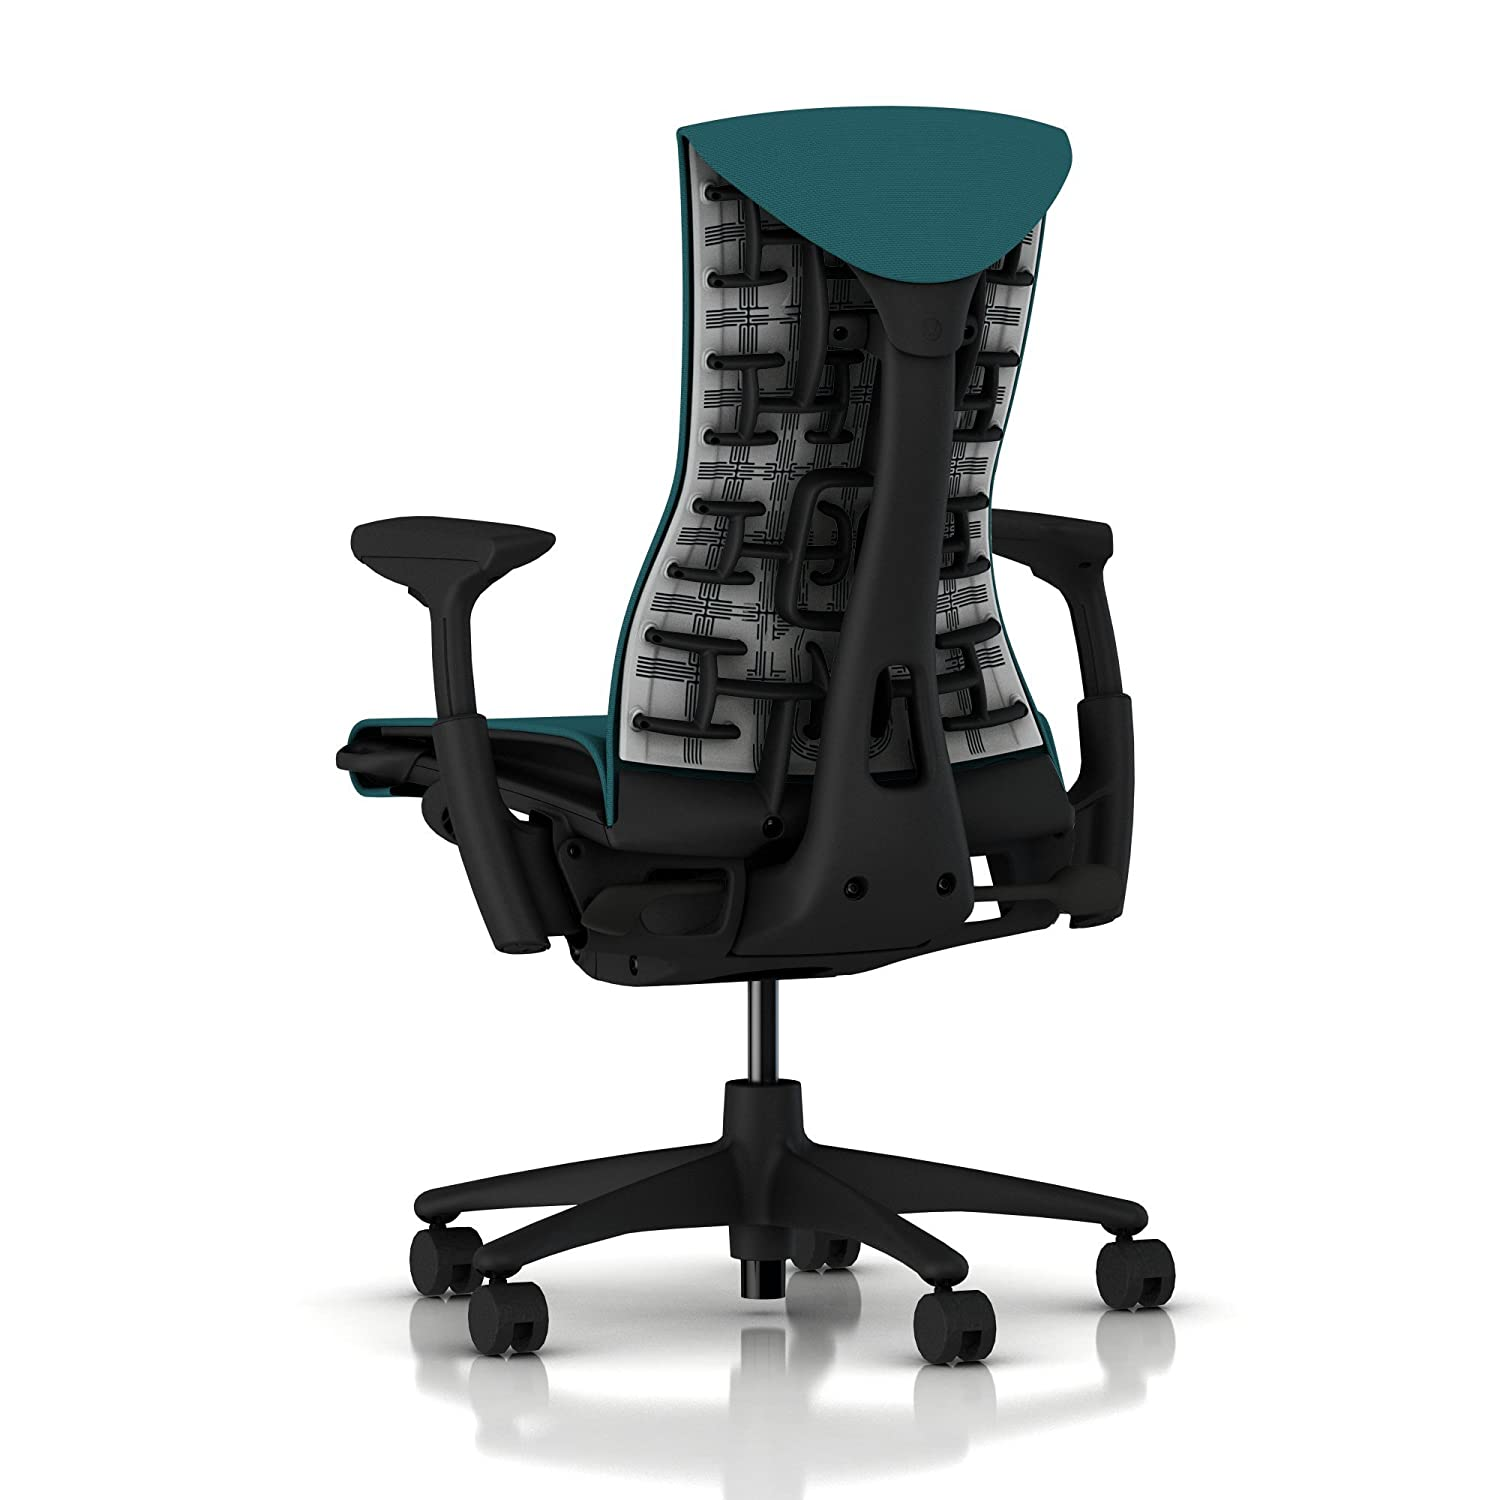 Herman Miller Embody Ergonomic Office Chair Fully Adjustable Arms and Carpet Casters Peacock Rhythm